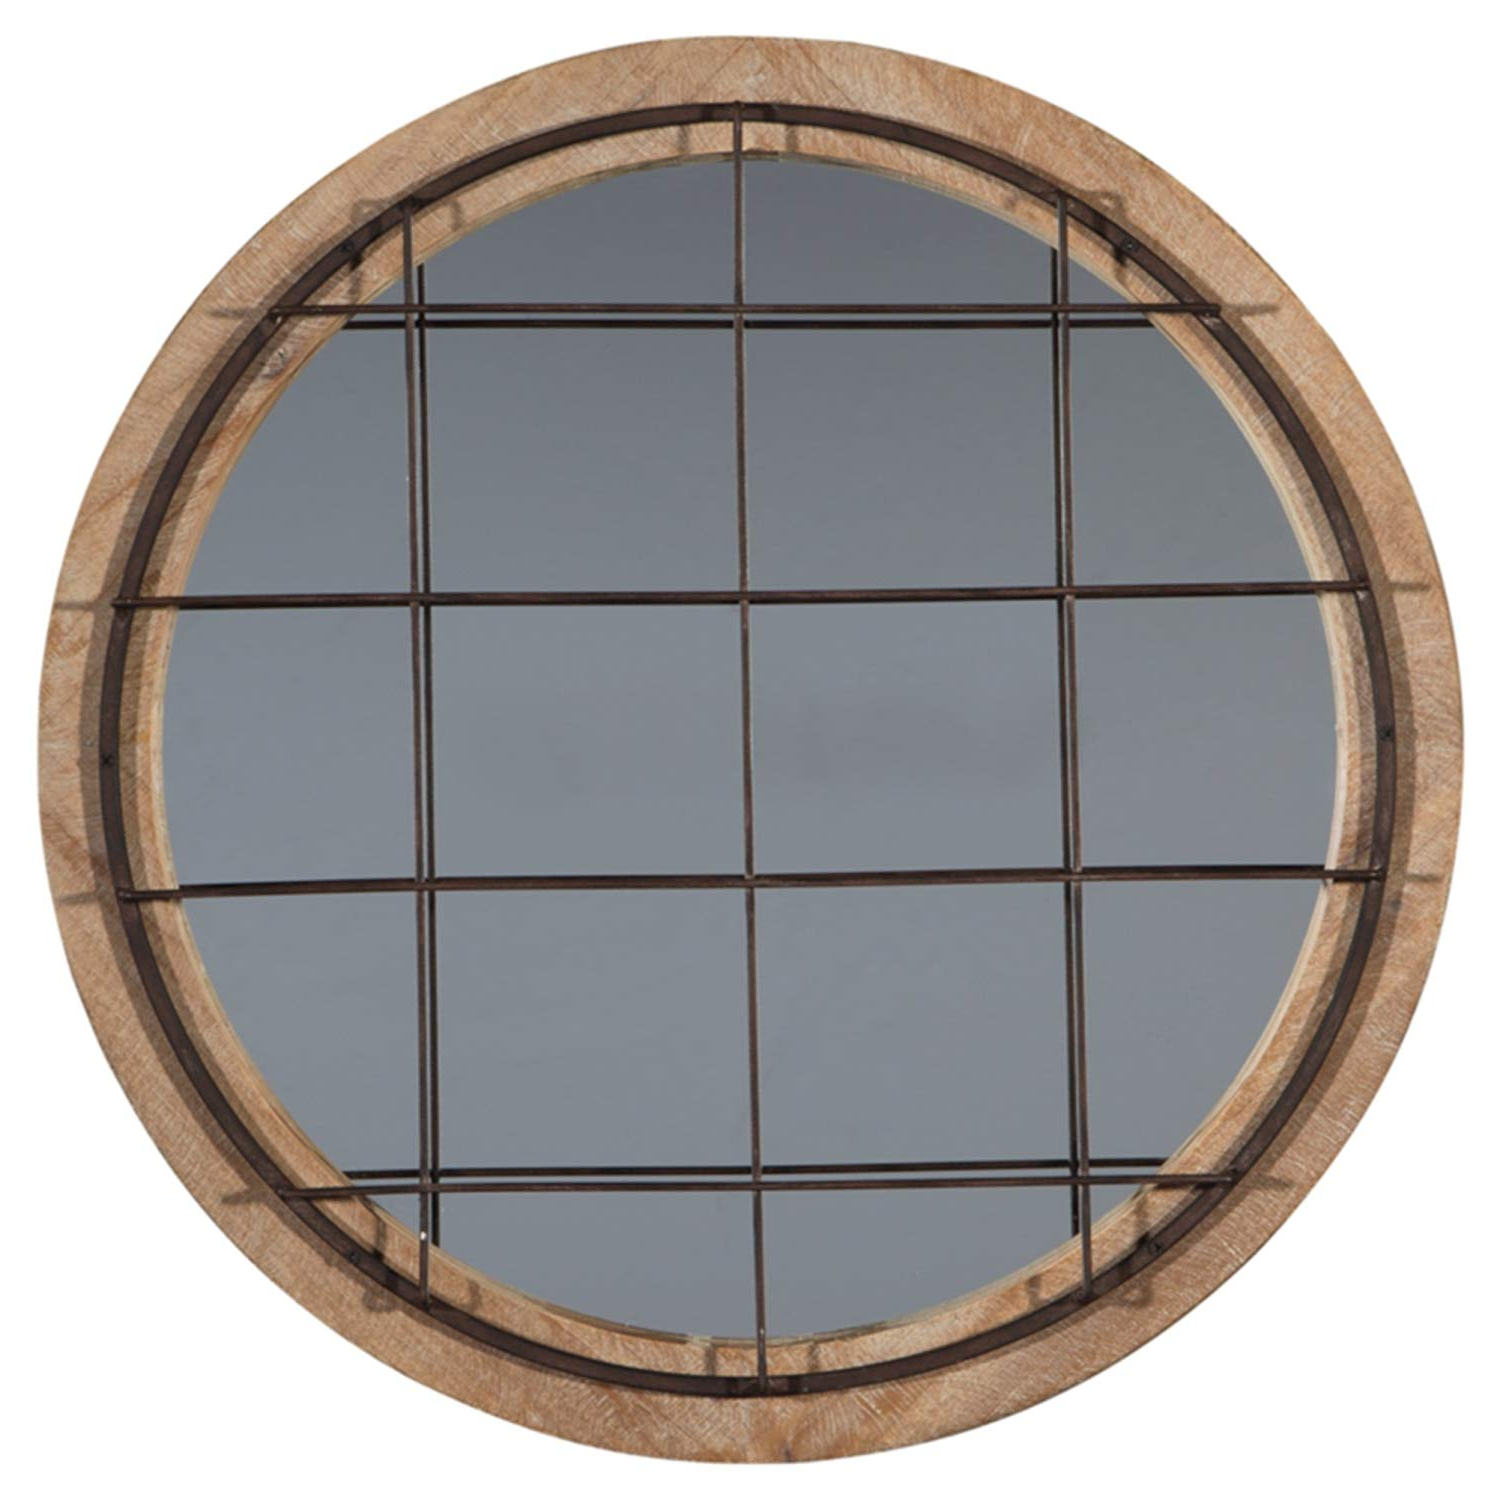 Ogier Accent Mirrors With Regard To Popular Ashley Furniture Signature Design – Eland Accent Mirror – Industrial – Black Finished Metal W/ Natural Wood Finish (View 12 of 20)